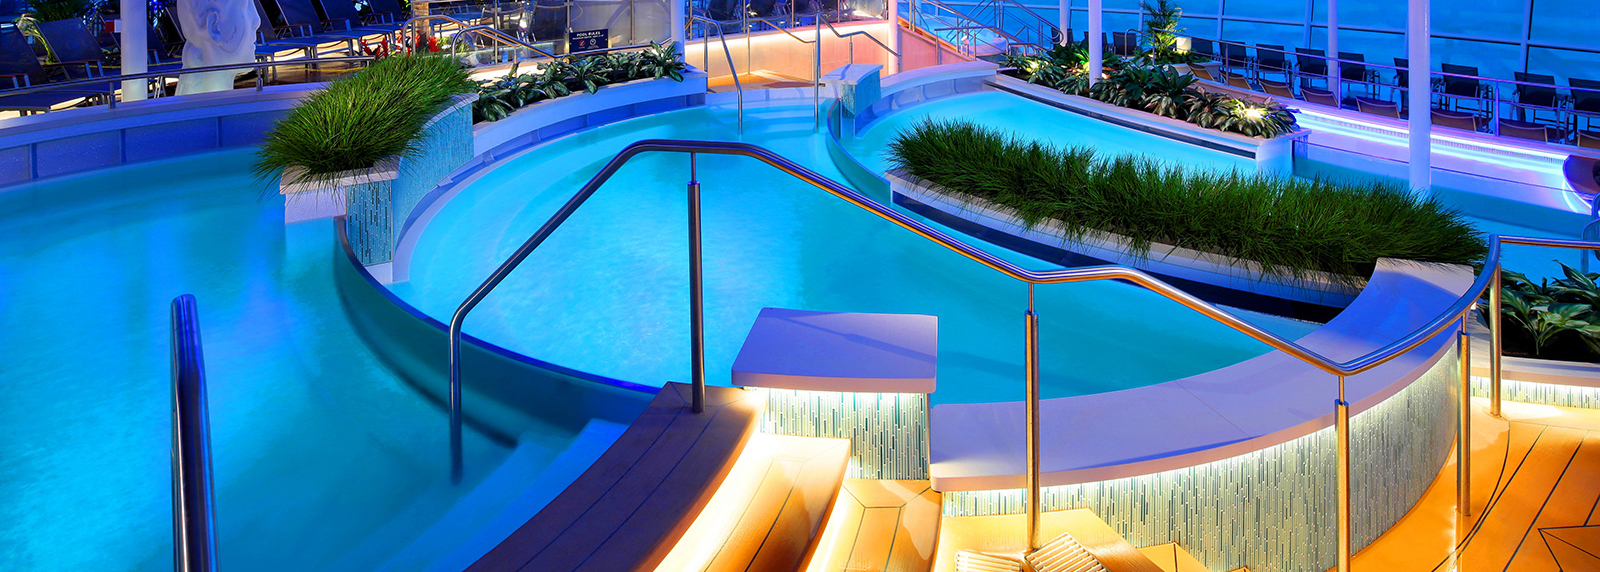 Quantum of the Seas - Pool Area - Photo: royal caribbean cruise line